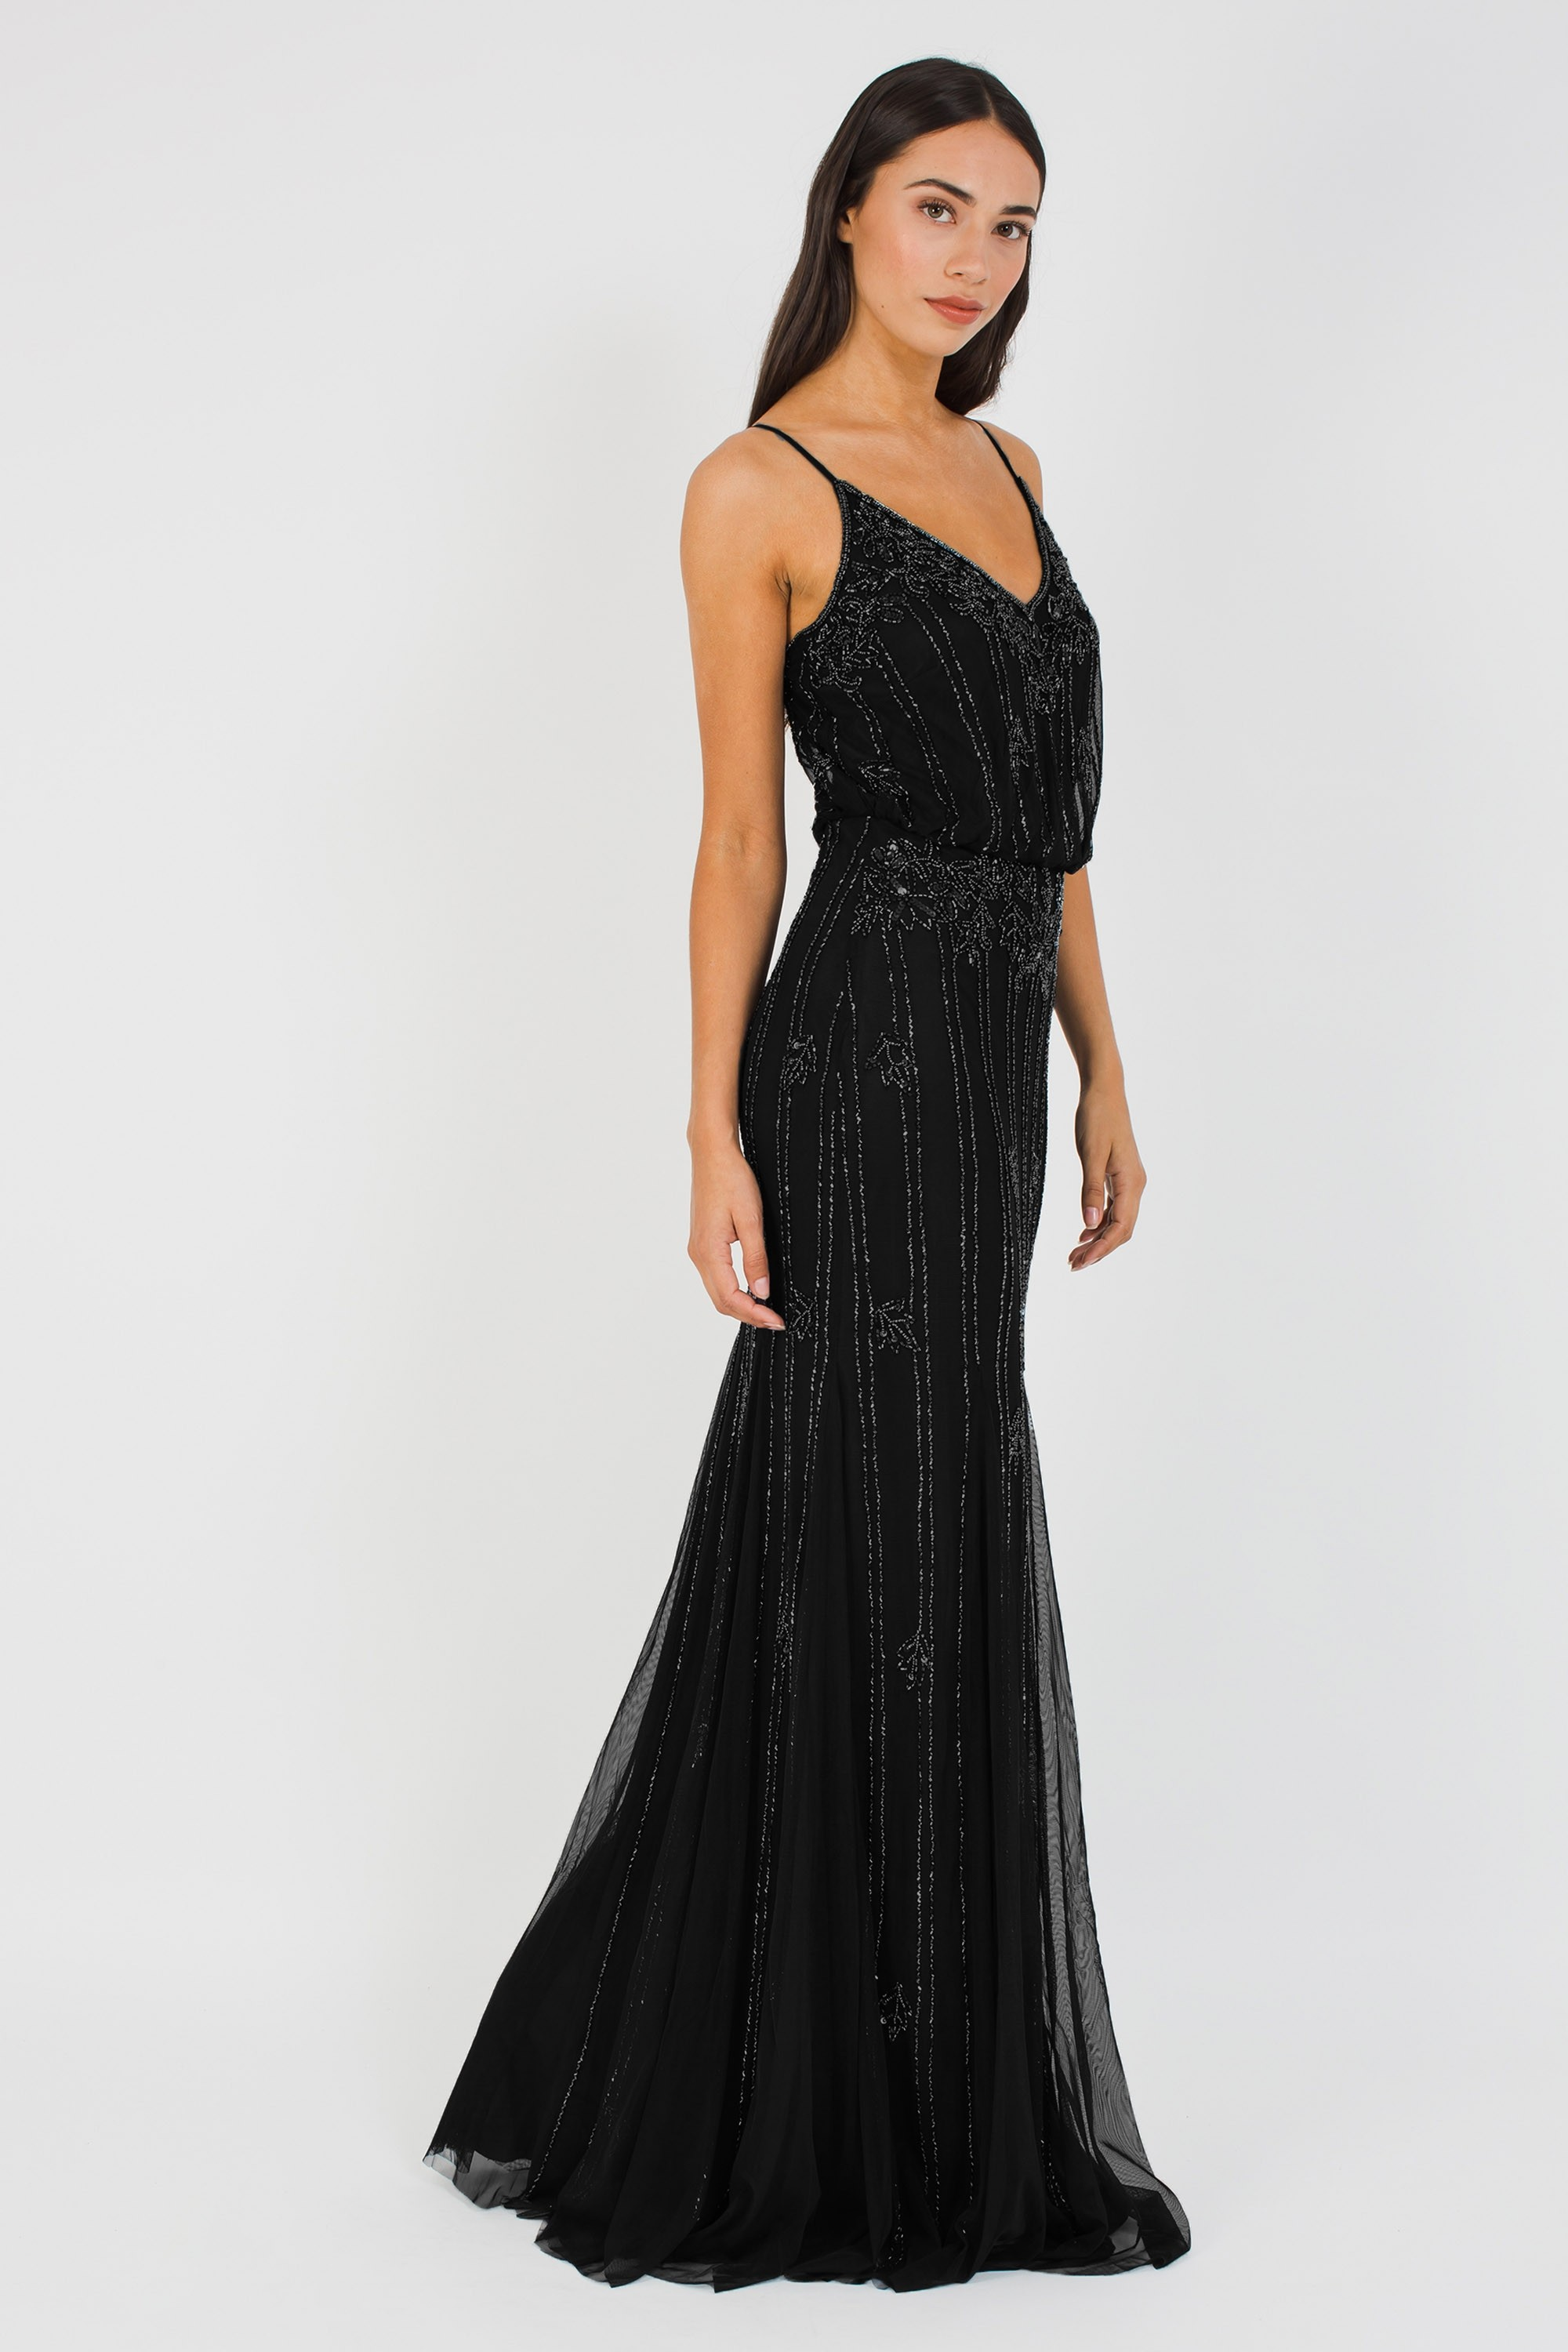 Lace Amp Beads Keeva Black Maxi Dress Lace Amp Beads Party Dress